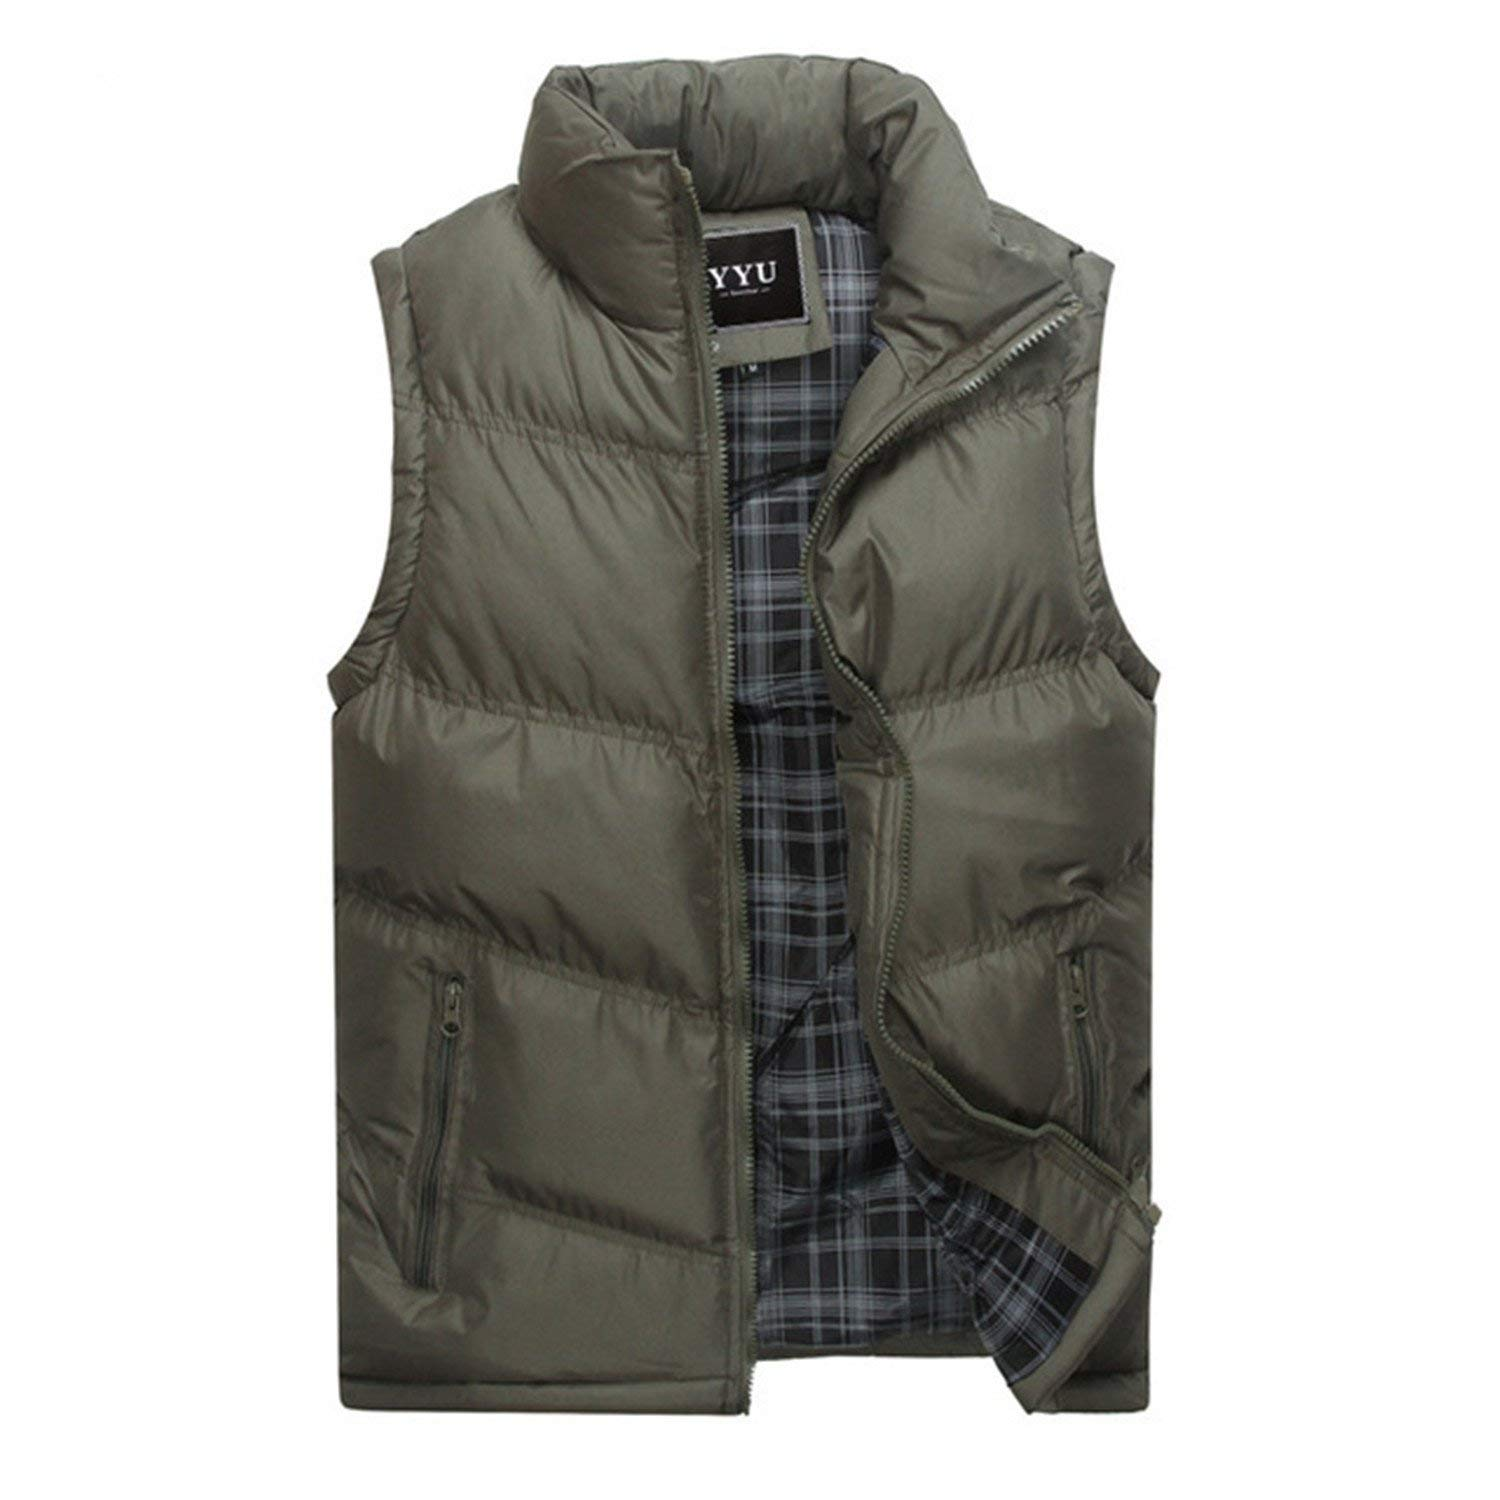 Jwhui Mens Jacket Sleeveless Vest Casual Coats Male Cotton-Padded Men Vest Men Thicken Waistcoat 3XL